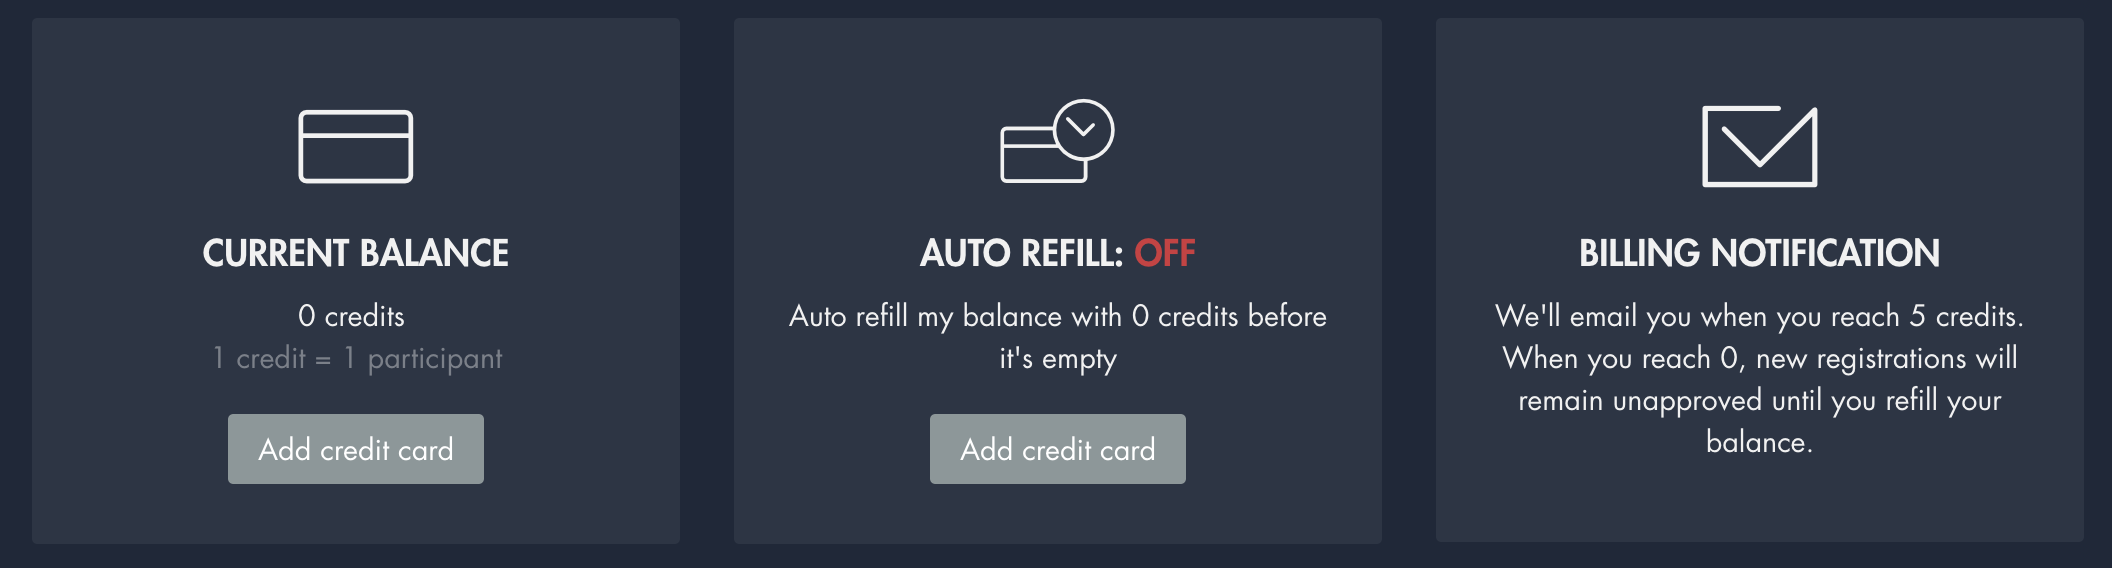 autorefill_off.png